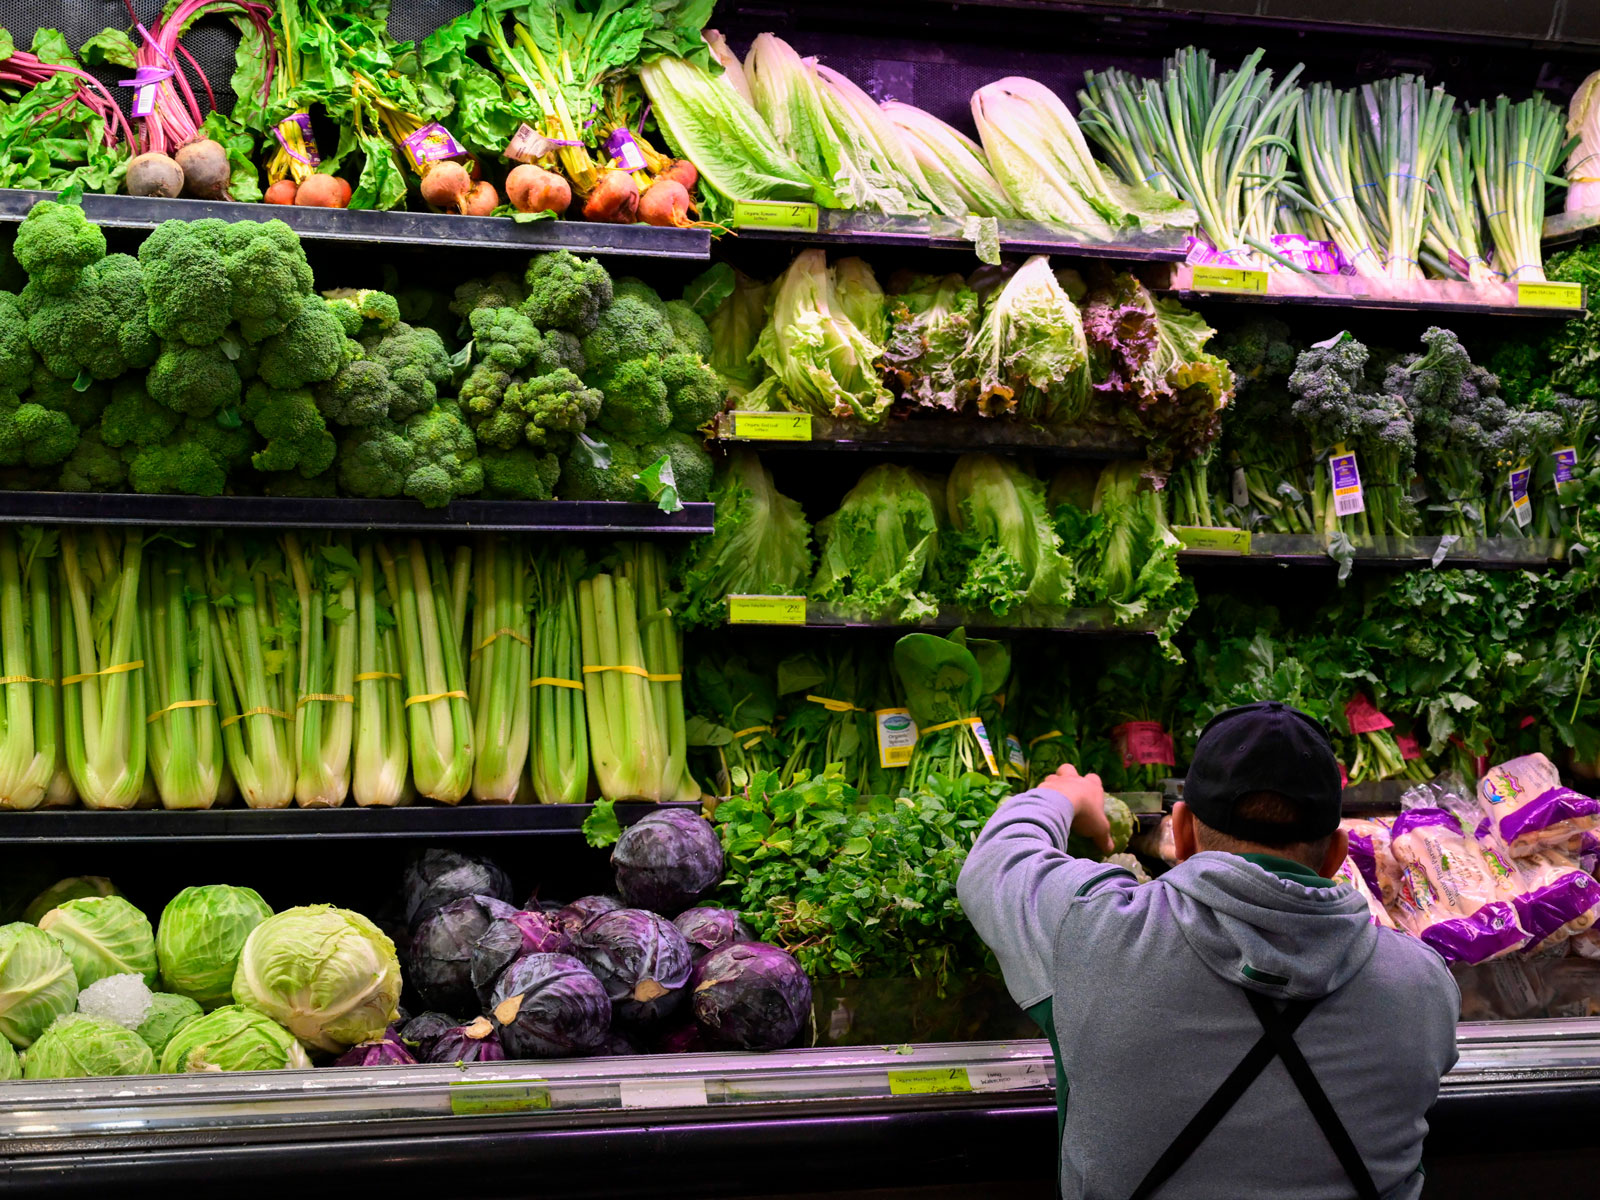 Millennials Want Quality Groceries and They're Willing to Pay More for Them, According to Whole Foods